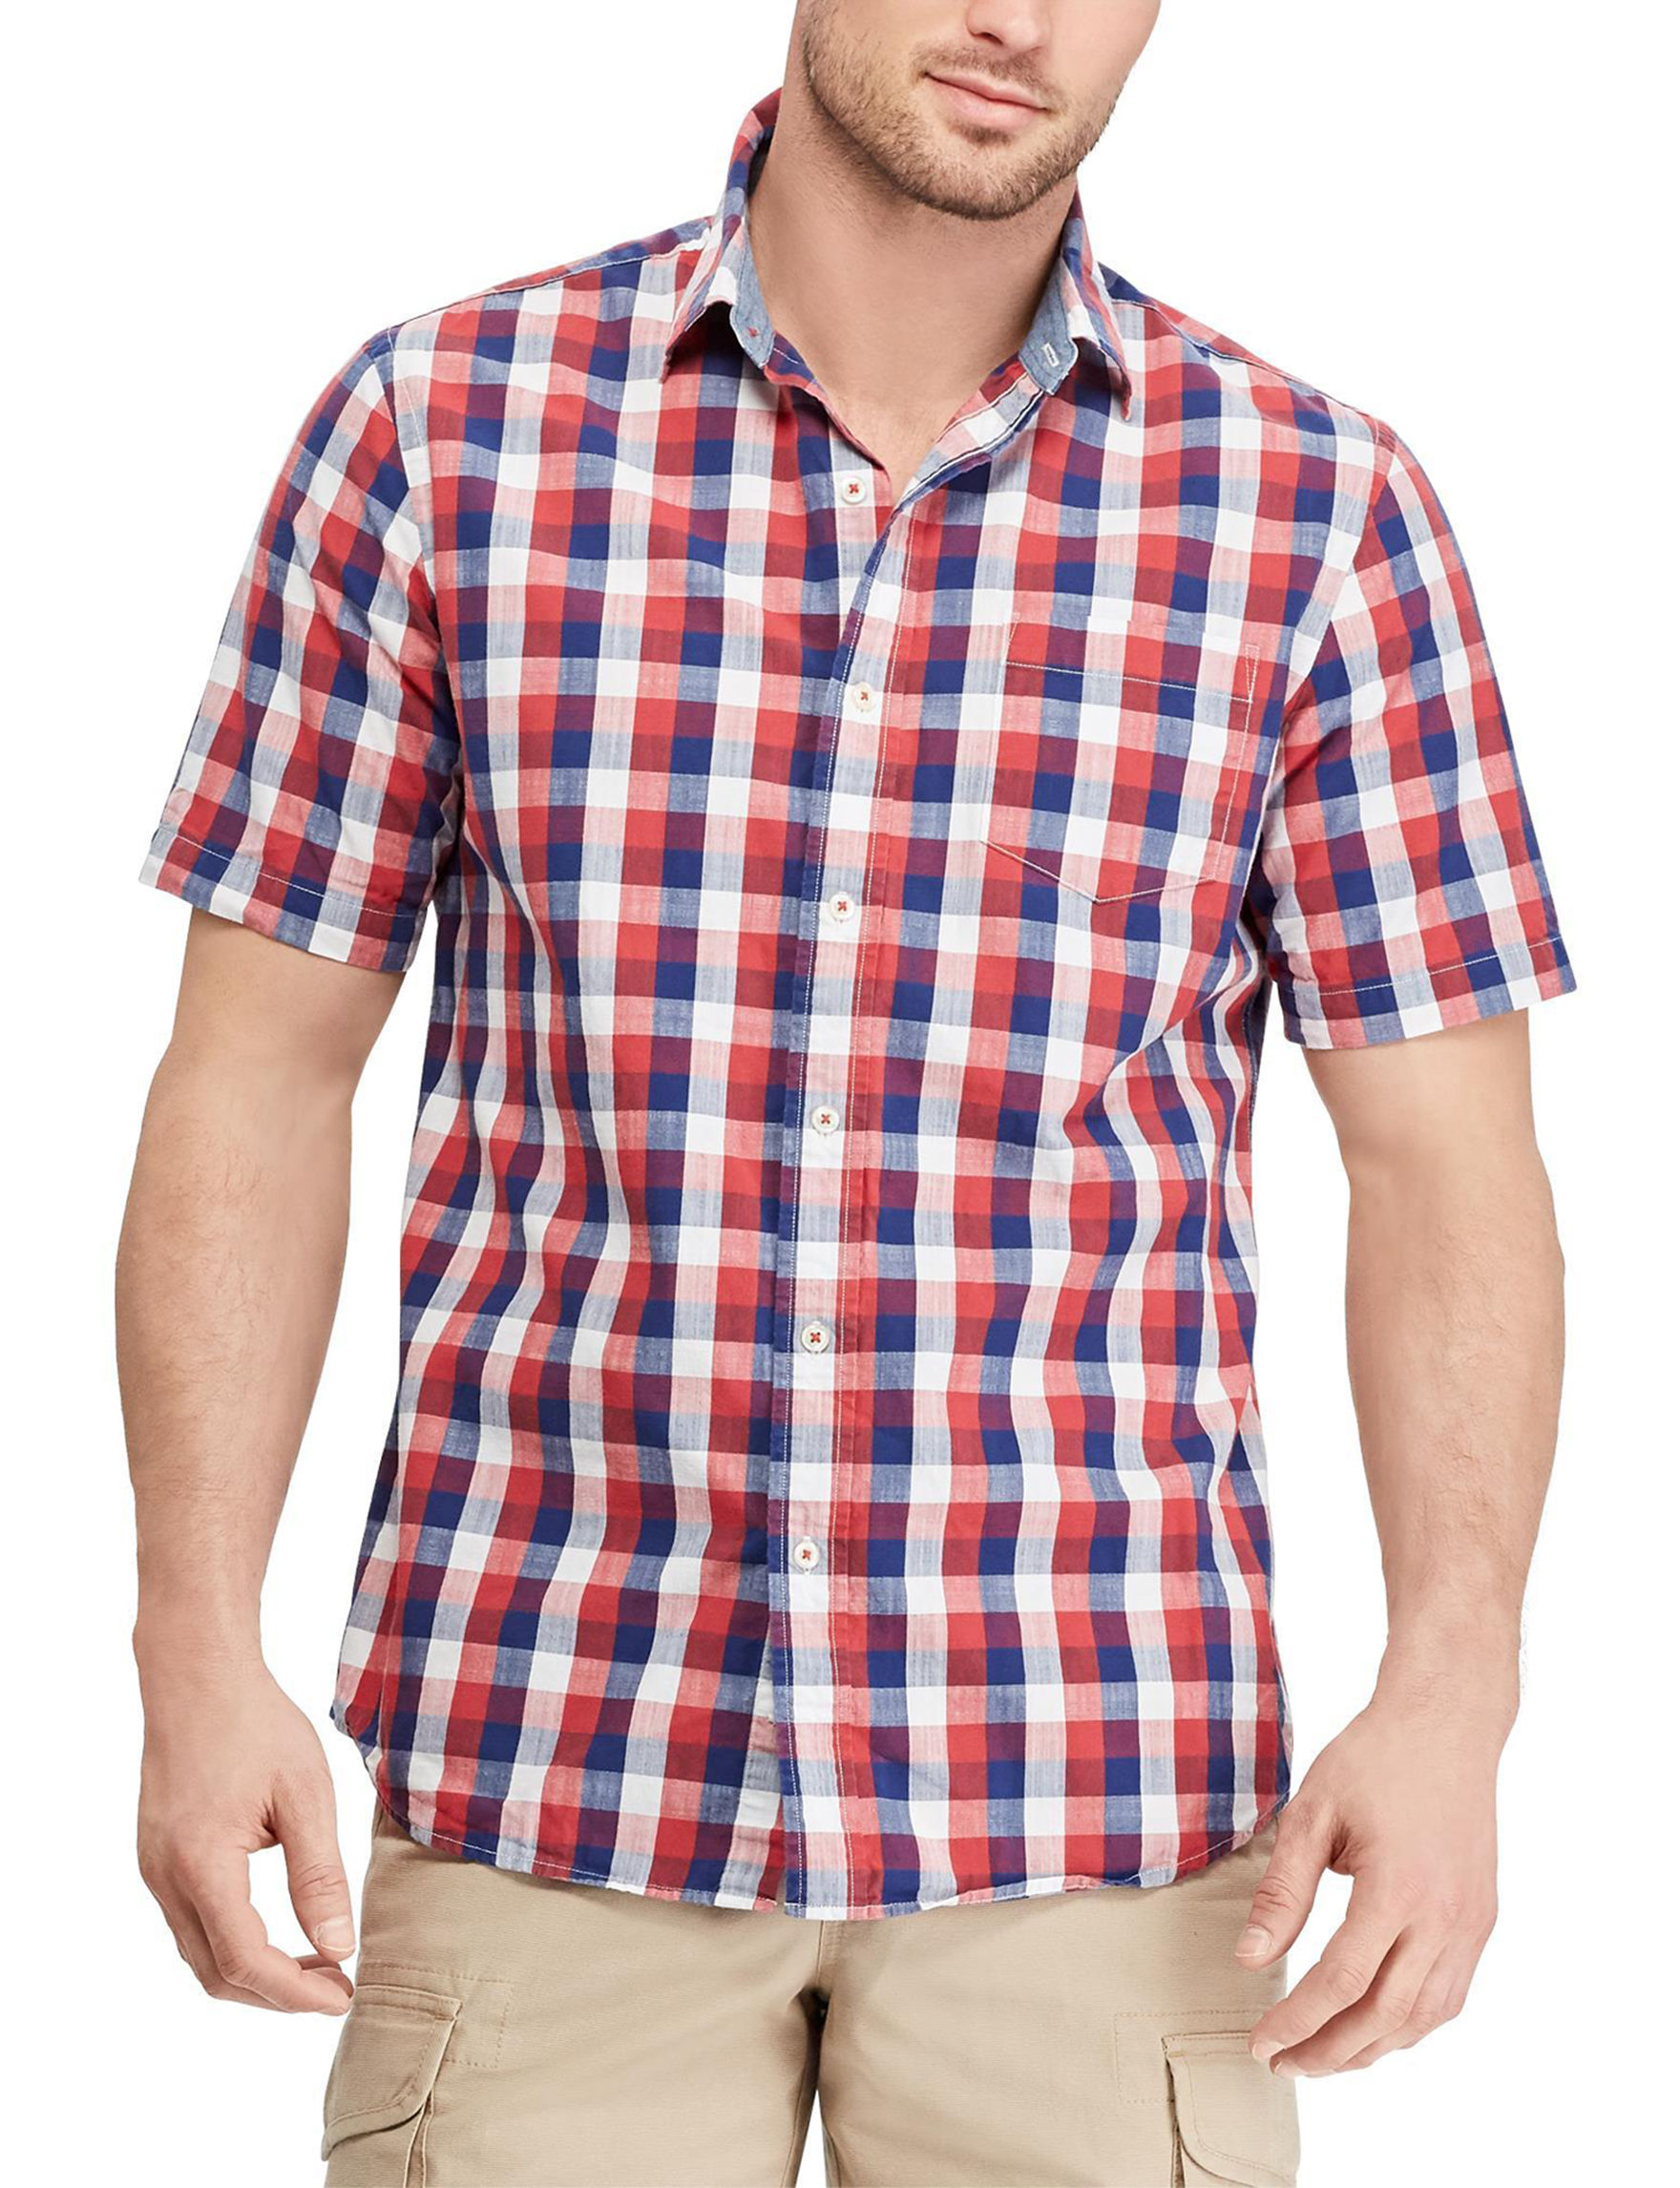 Chaps Red / Navy Casual Button Down Shirts